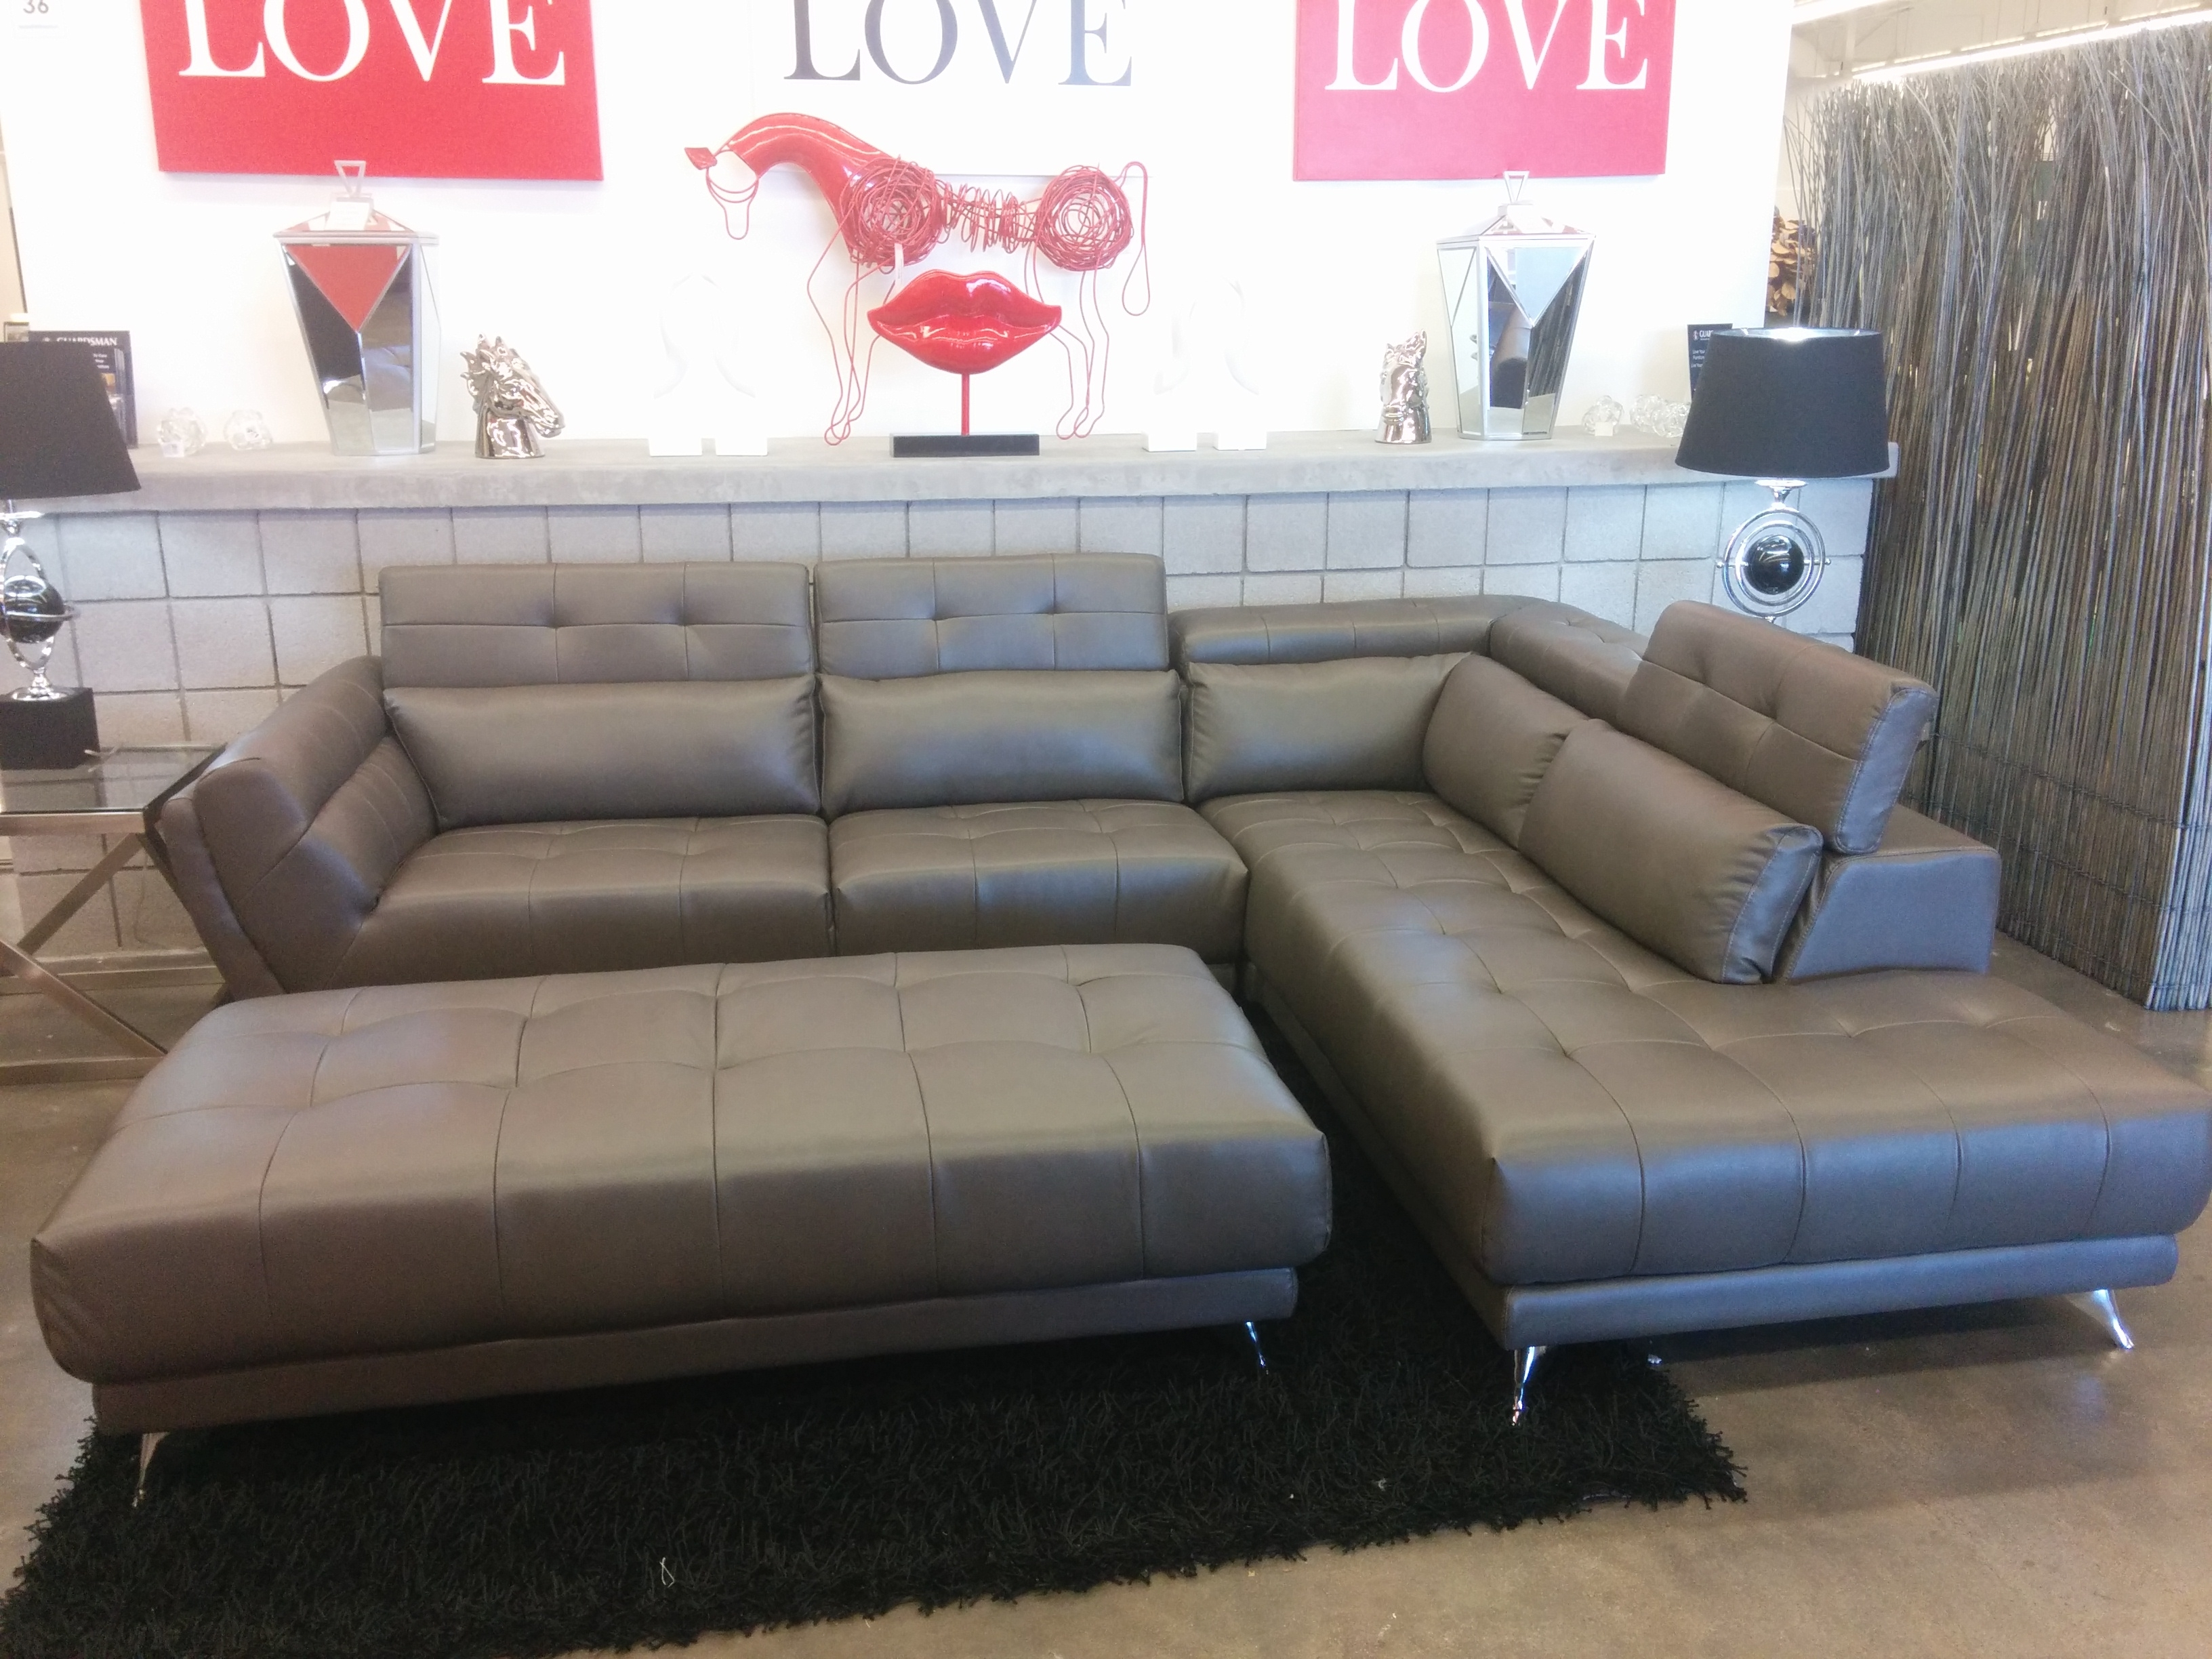 Unique Sectional Sofas Phoenix Az – Sectional Sofas For Phoenix Arizona Sectional Sofas (Photo 3 of 10)